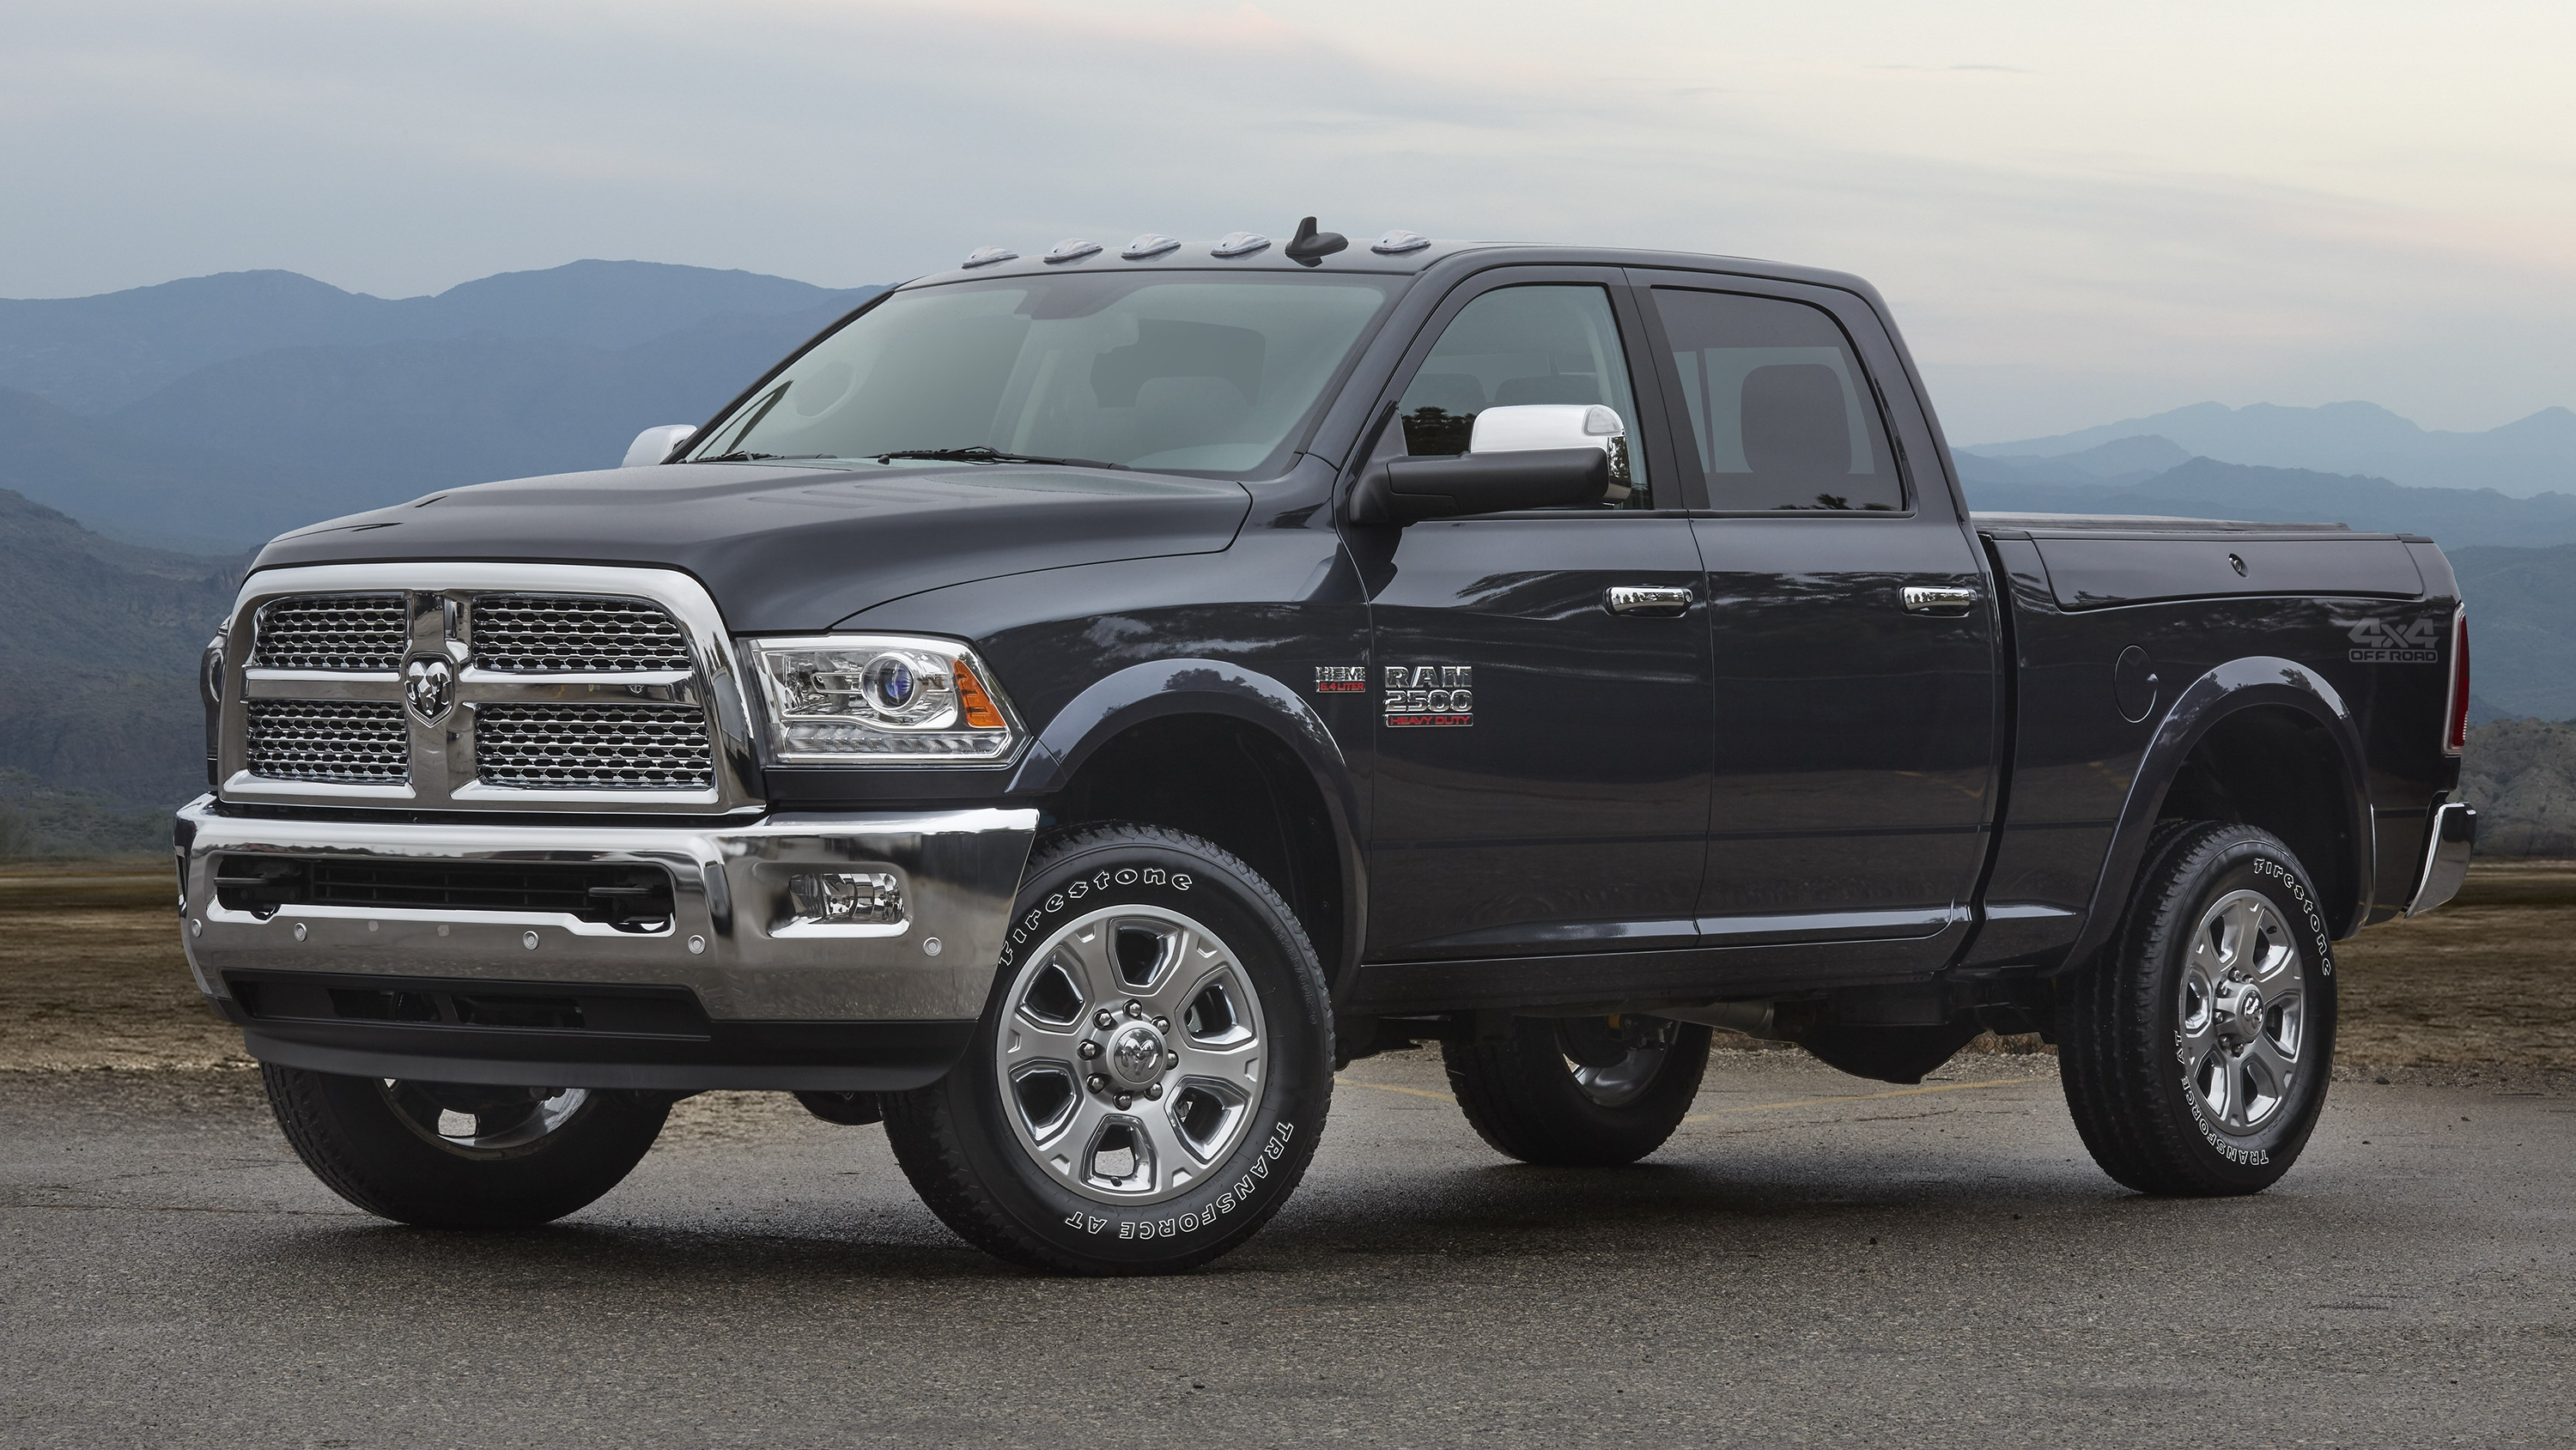 2017 Ram 2500 Slt >> Ram Bringing Full Off-road Truck Lineup To 2016 Overland Expo | Top Speed